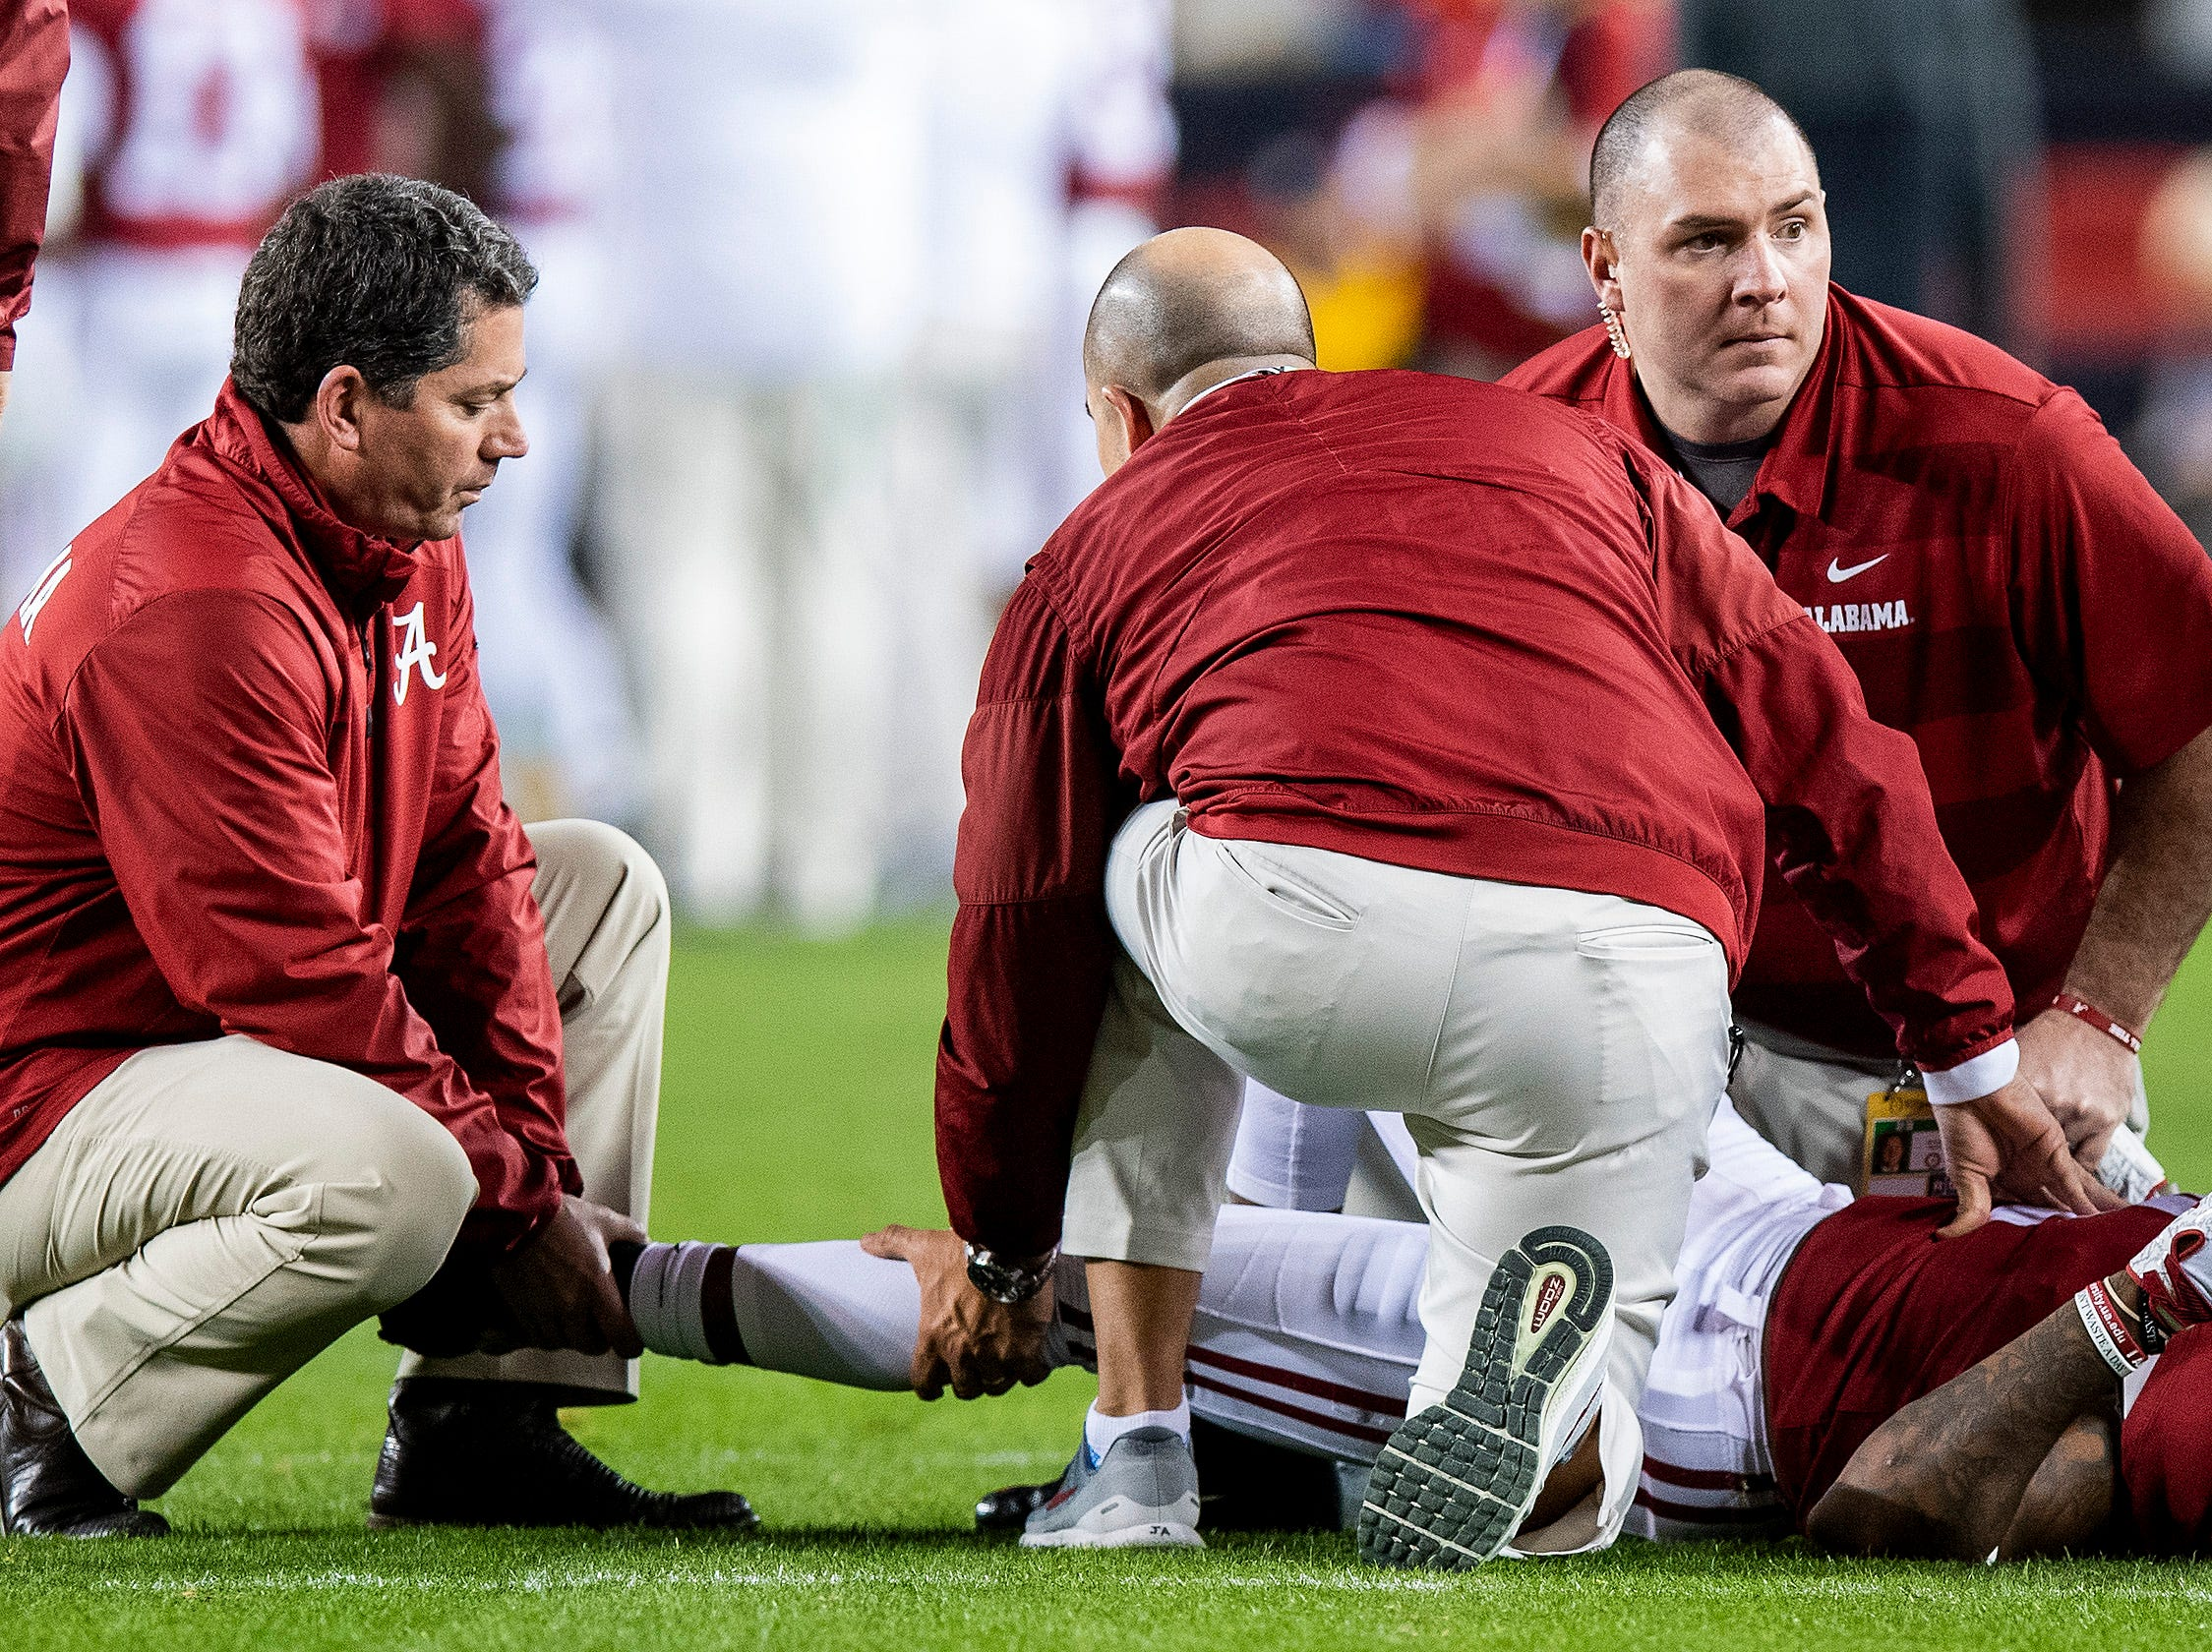 Alabama defensive back Saivion Smith (4) is injured In second half action against Clemson in the College Football Playoff National Championship game at Levi's Stadium in Santa Clara, Ca., on Monday January 7, 2019.